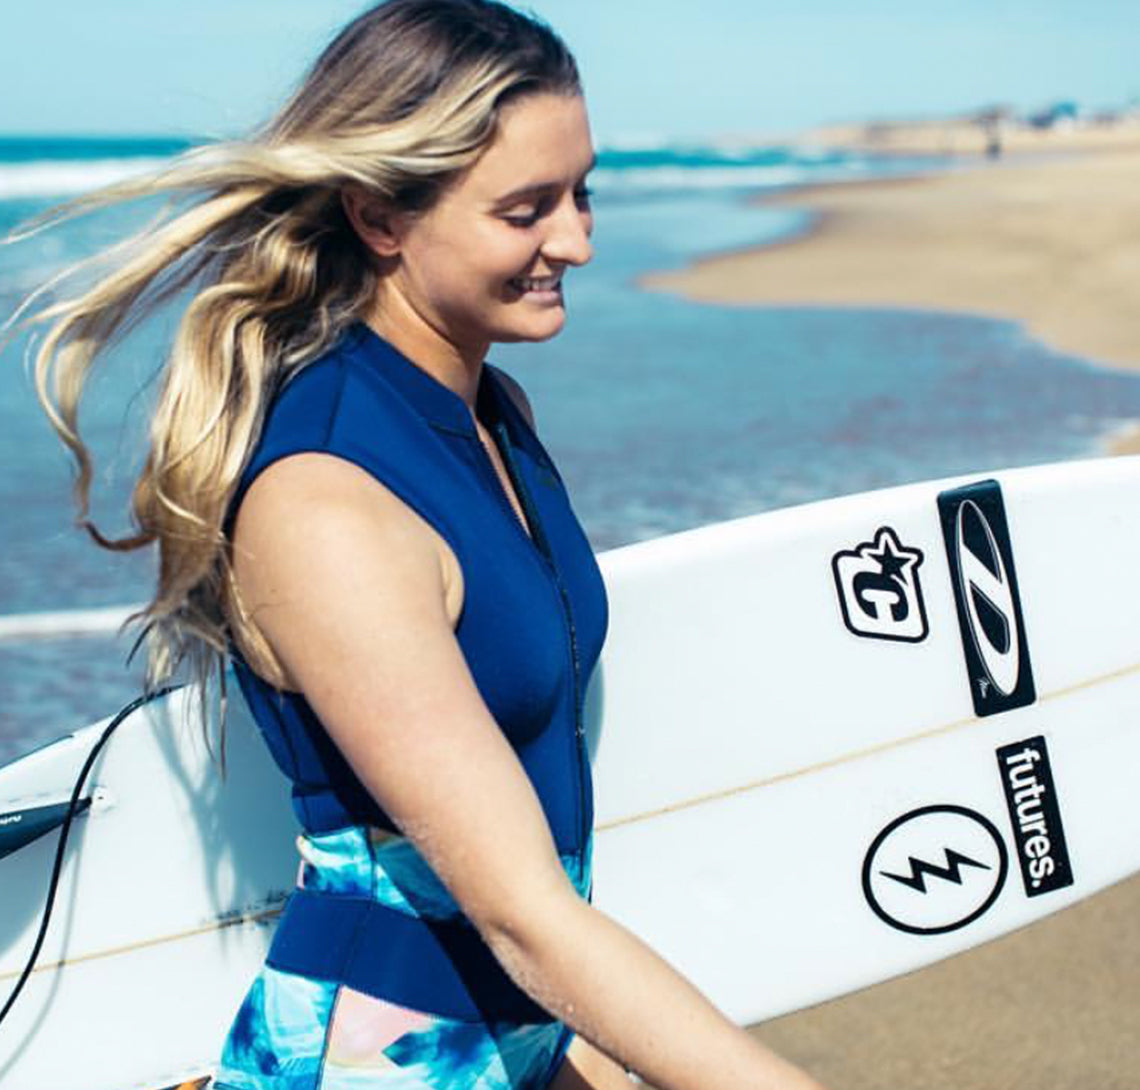 Pro surfer Bronte Macaulay on how she stays fit & health